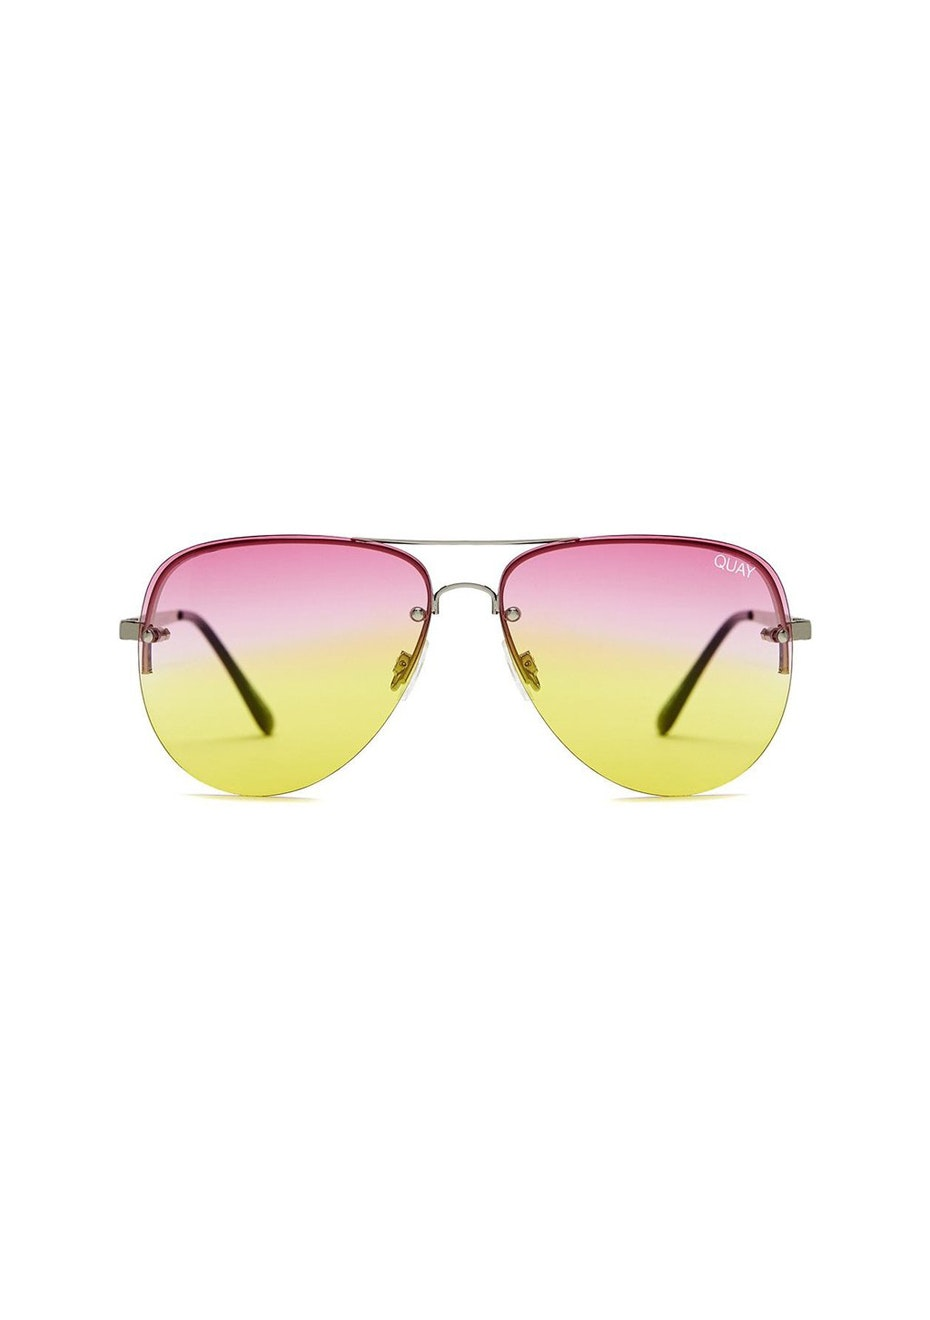 Quay - Muse Fade - Silver/ Pink Yellow Fade Lens